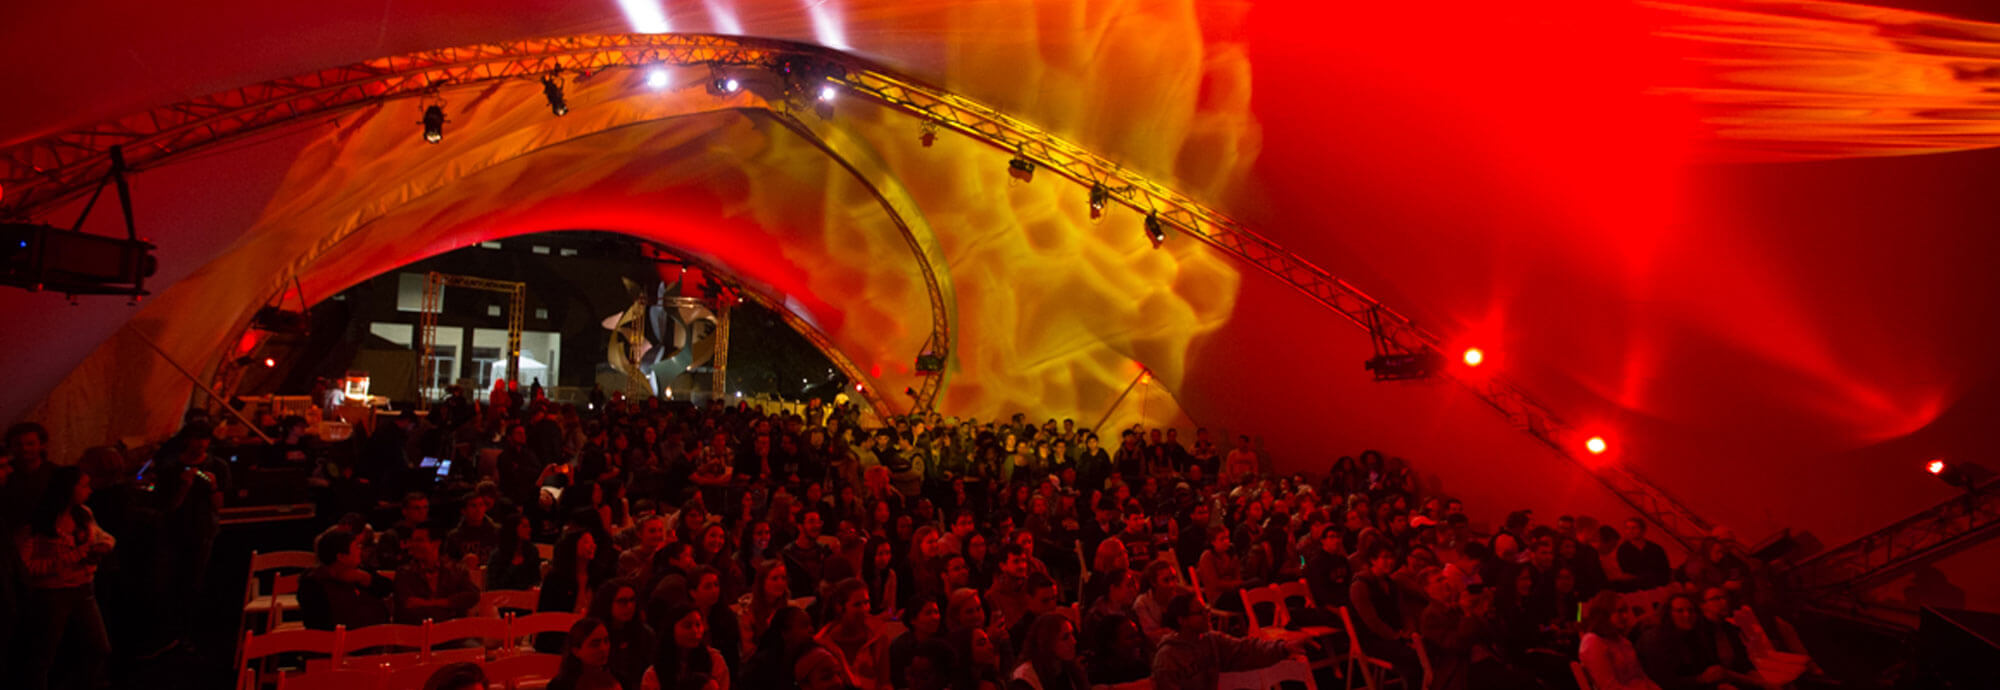 Attendees under a tent at night